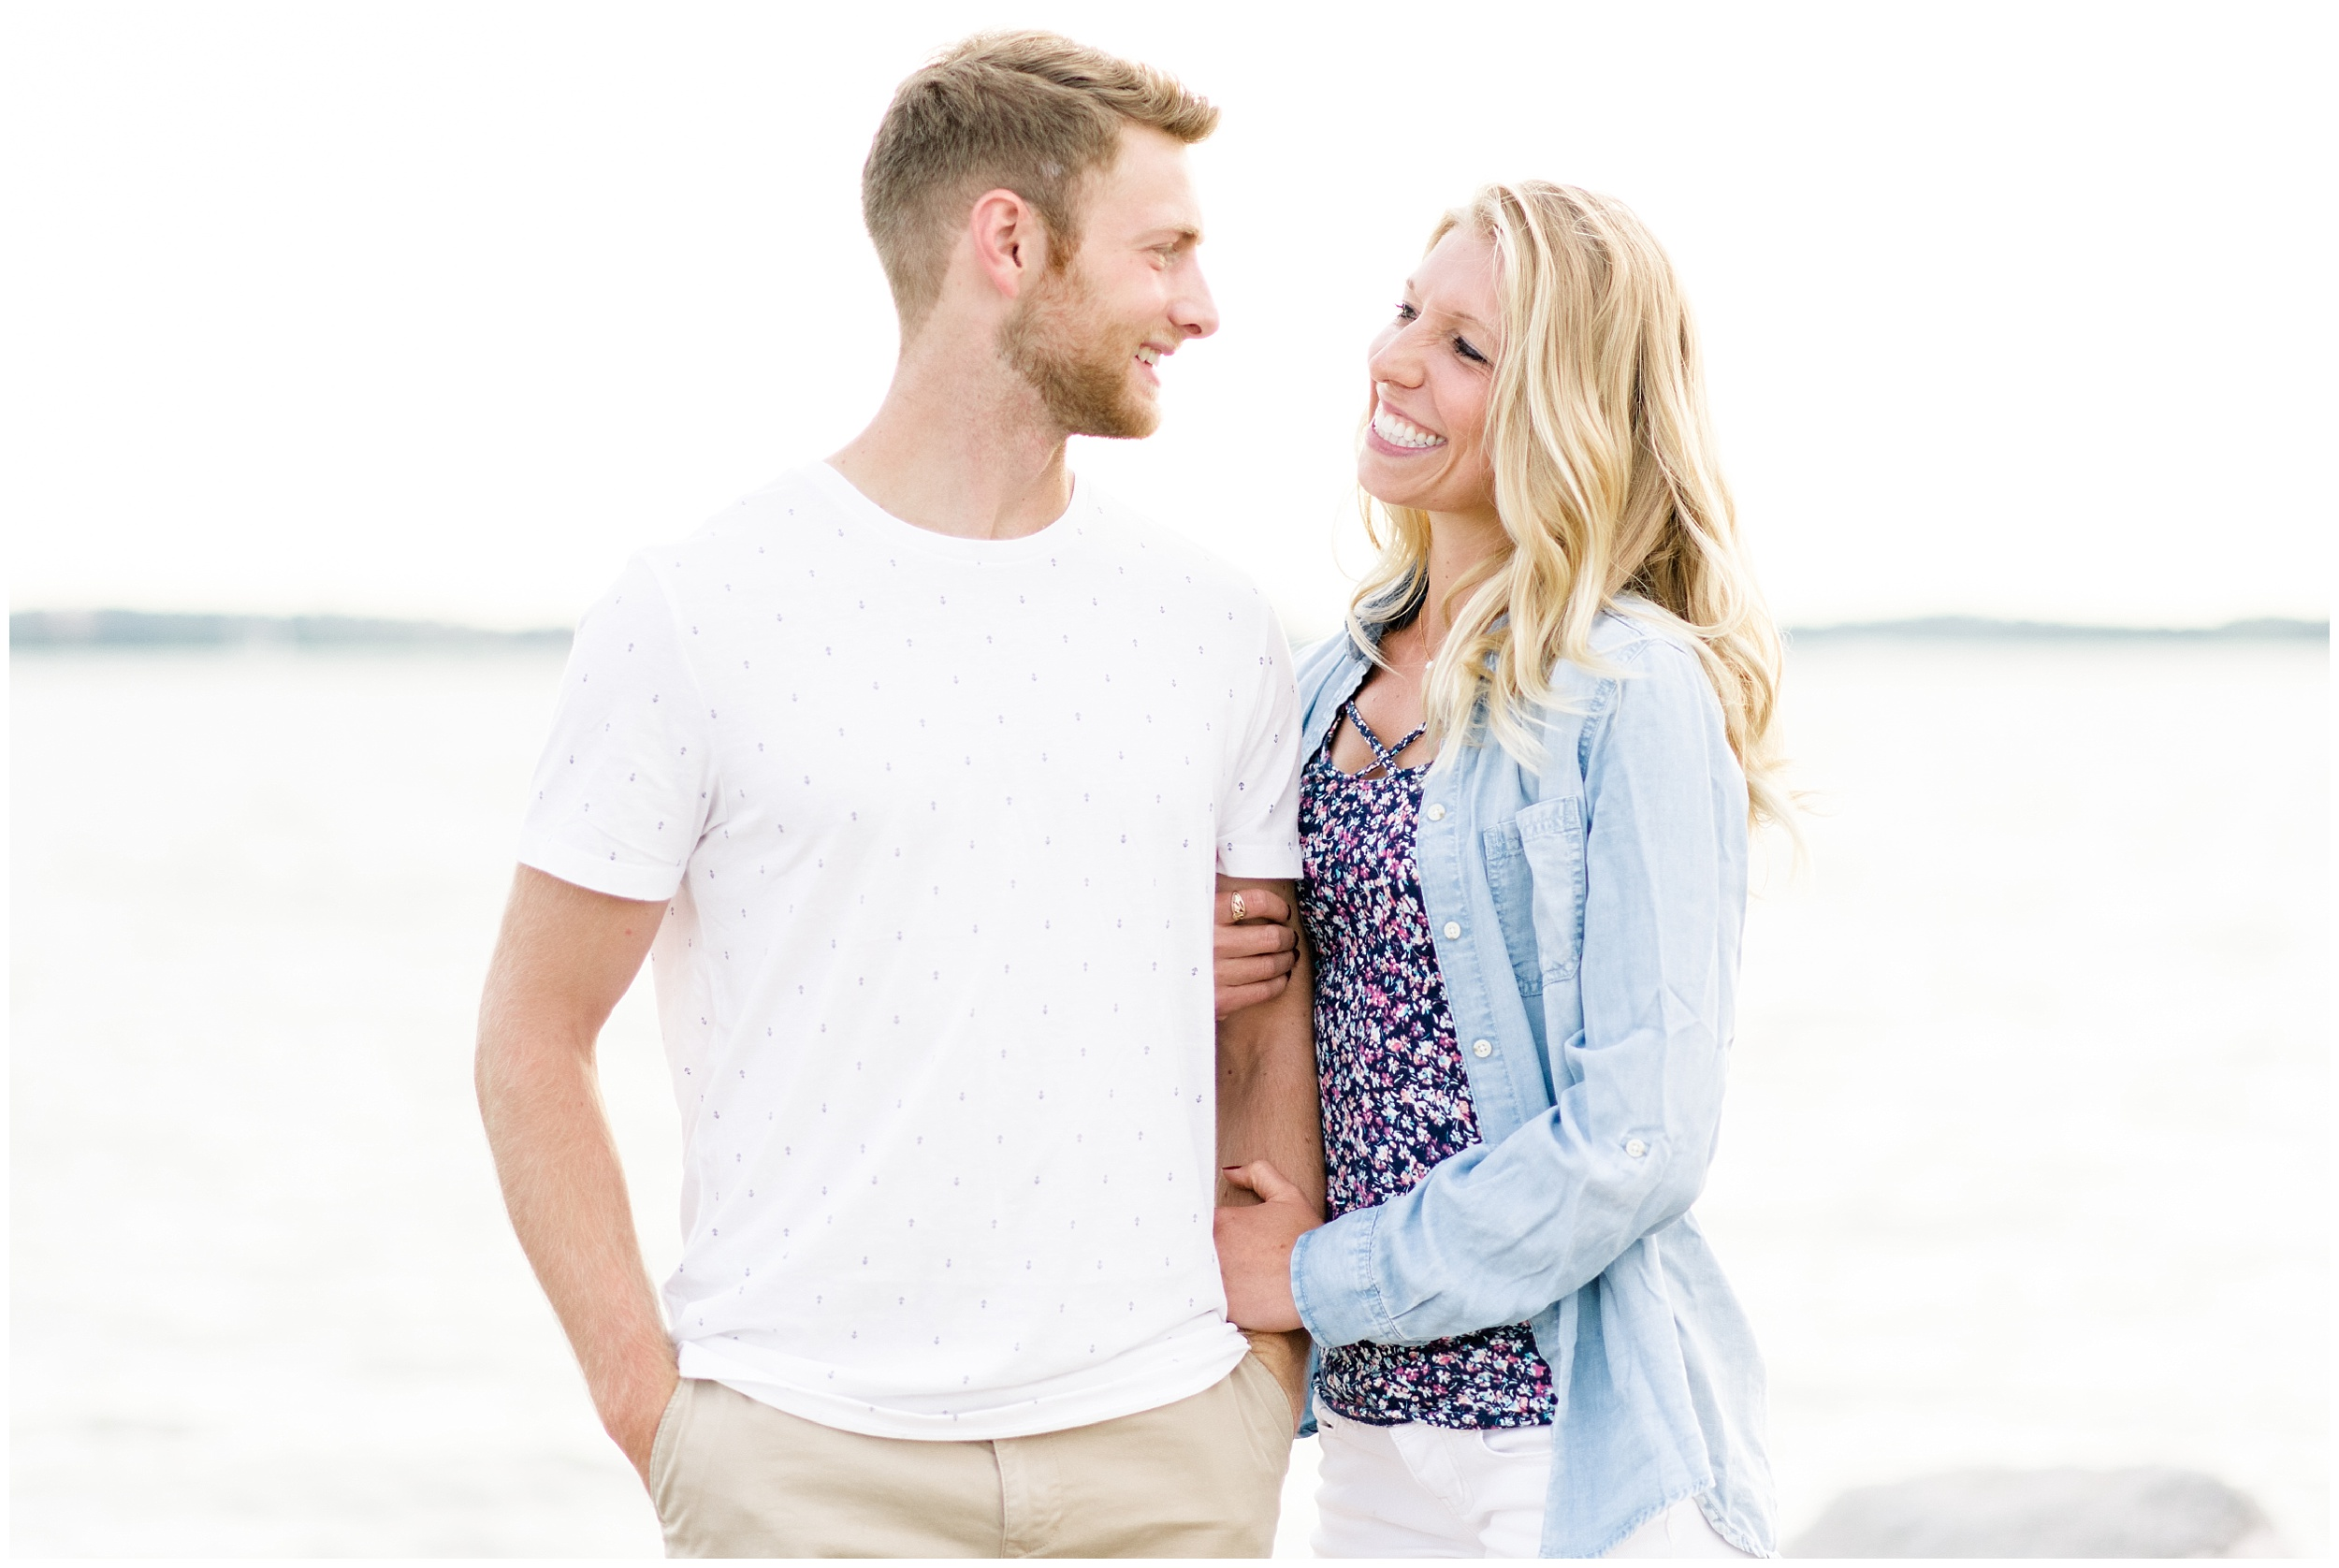 tenney-park-engagement-session-madison-wisconsin-bright-light-airy-wedding-photographer_0030.jpg